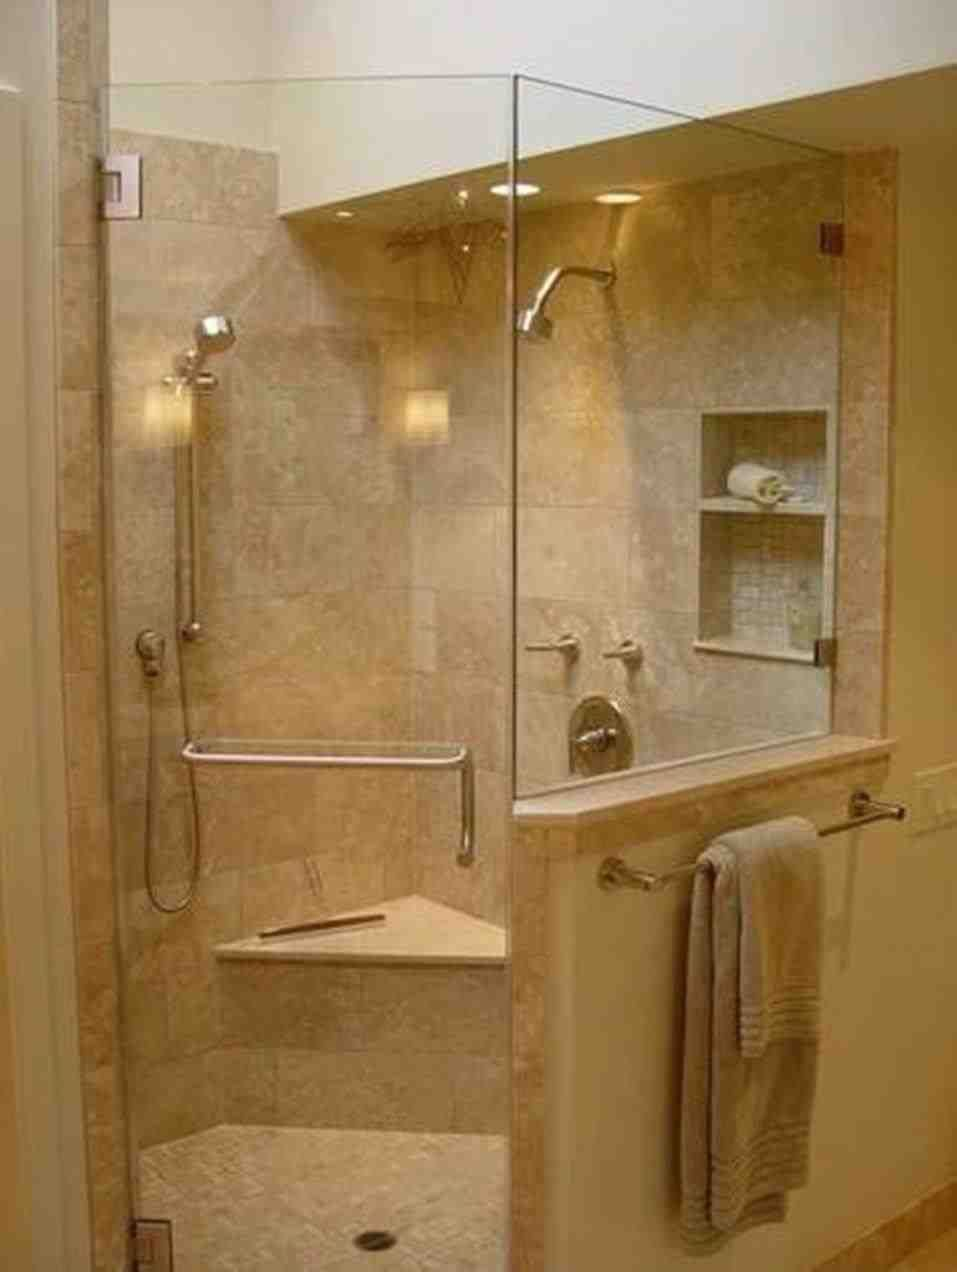 This fiberglass tub shower combo - image of: bathroom tub and shower ...